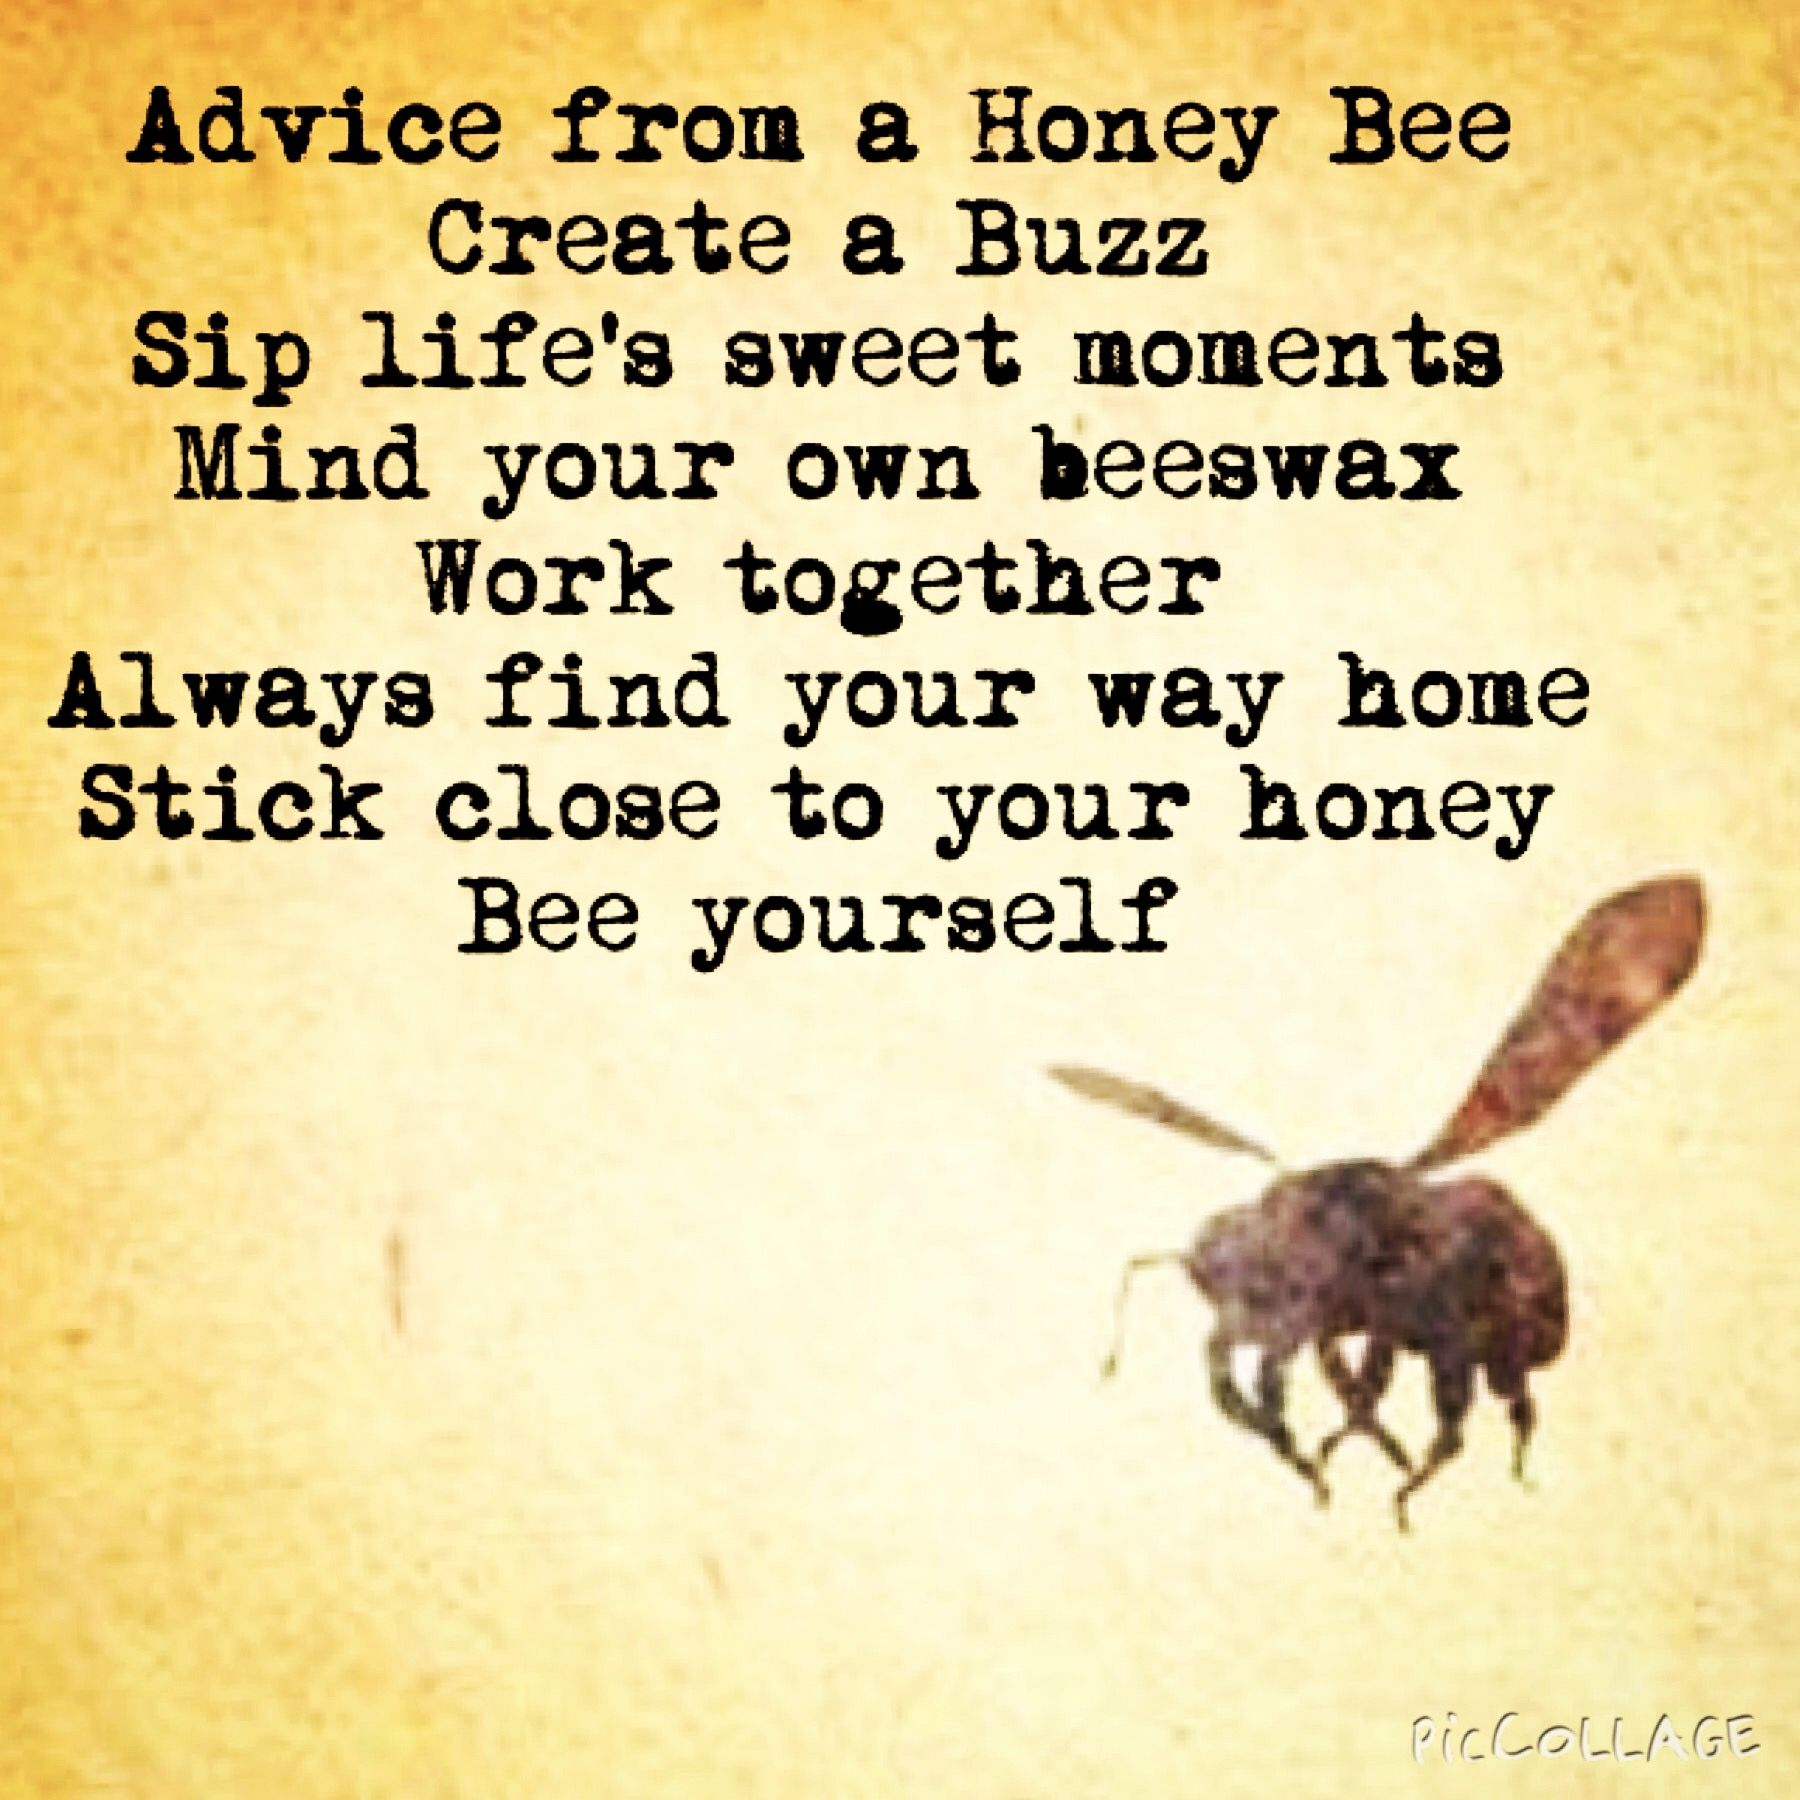 The Bee S Reverie ≗ Bee Advice ≗ The Bee S Reverie